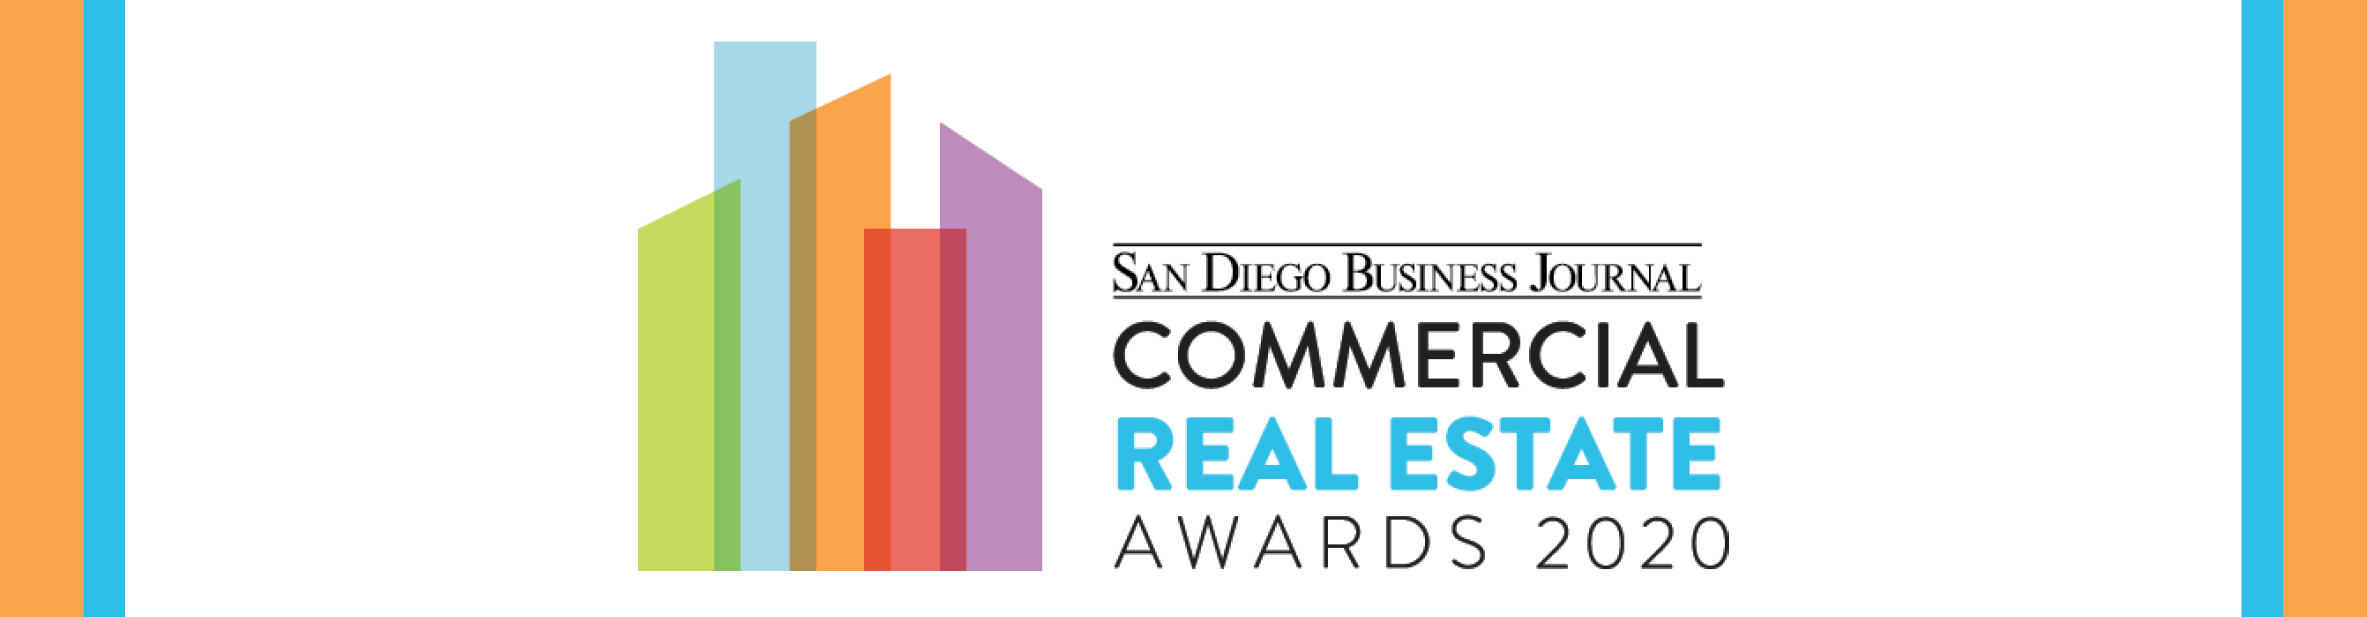 San Diego Business Journal Commercial Real Estate Awards